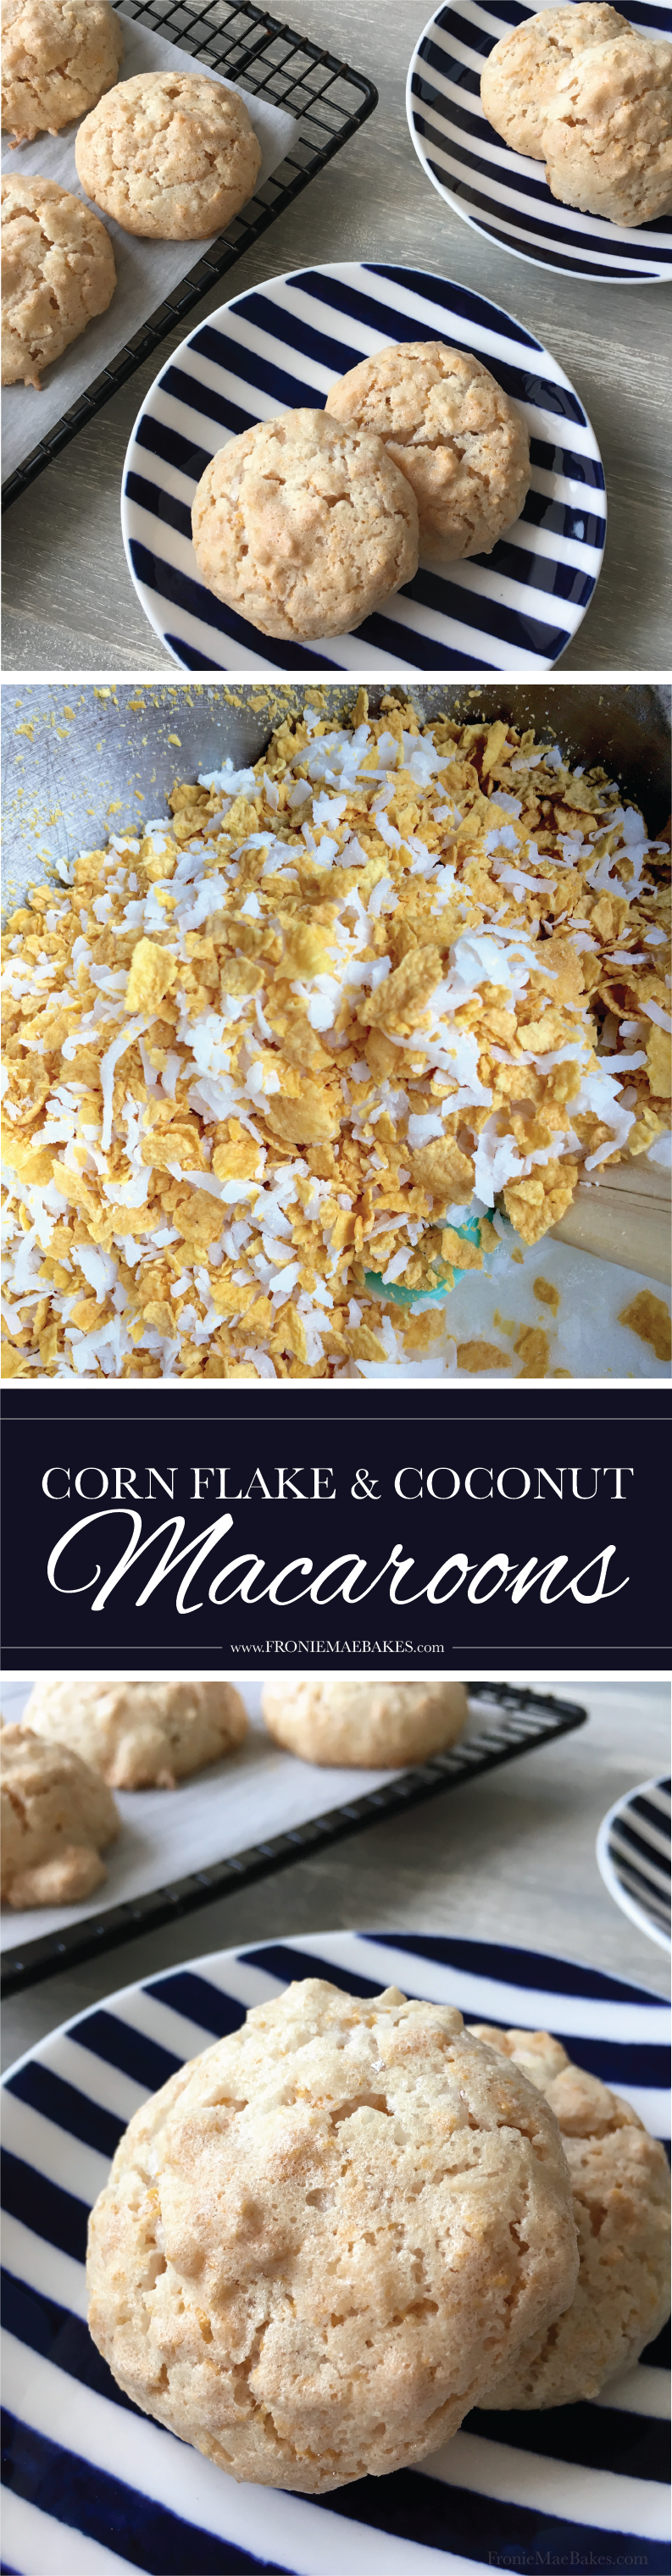 Treat yourself with these homemade Sweet Cornflake and Coconut Macaroons. Recipe on www.froniemaebakes.com